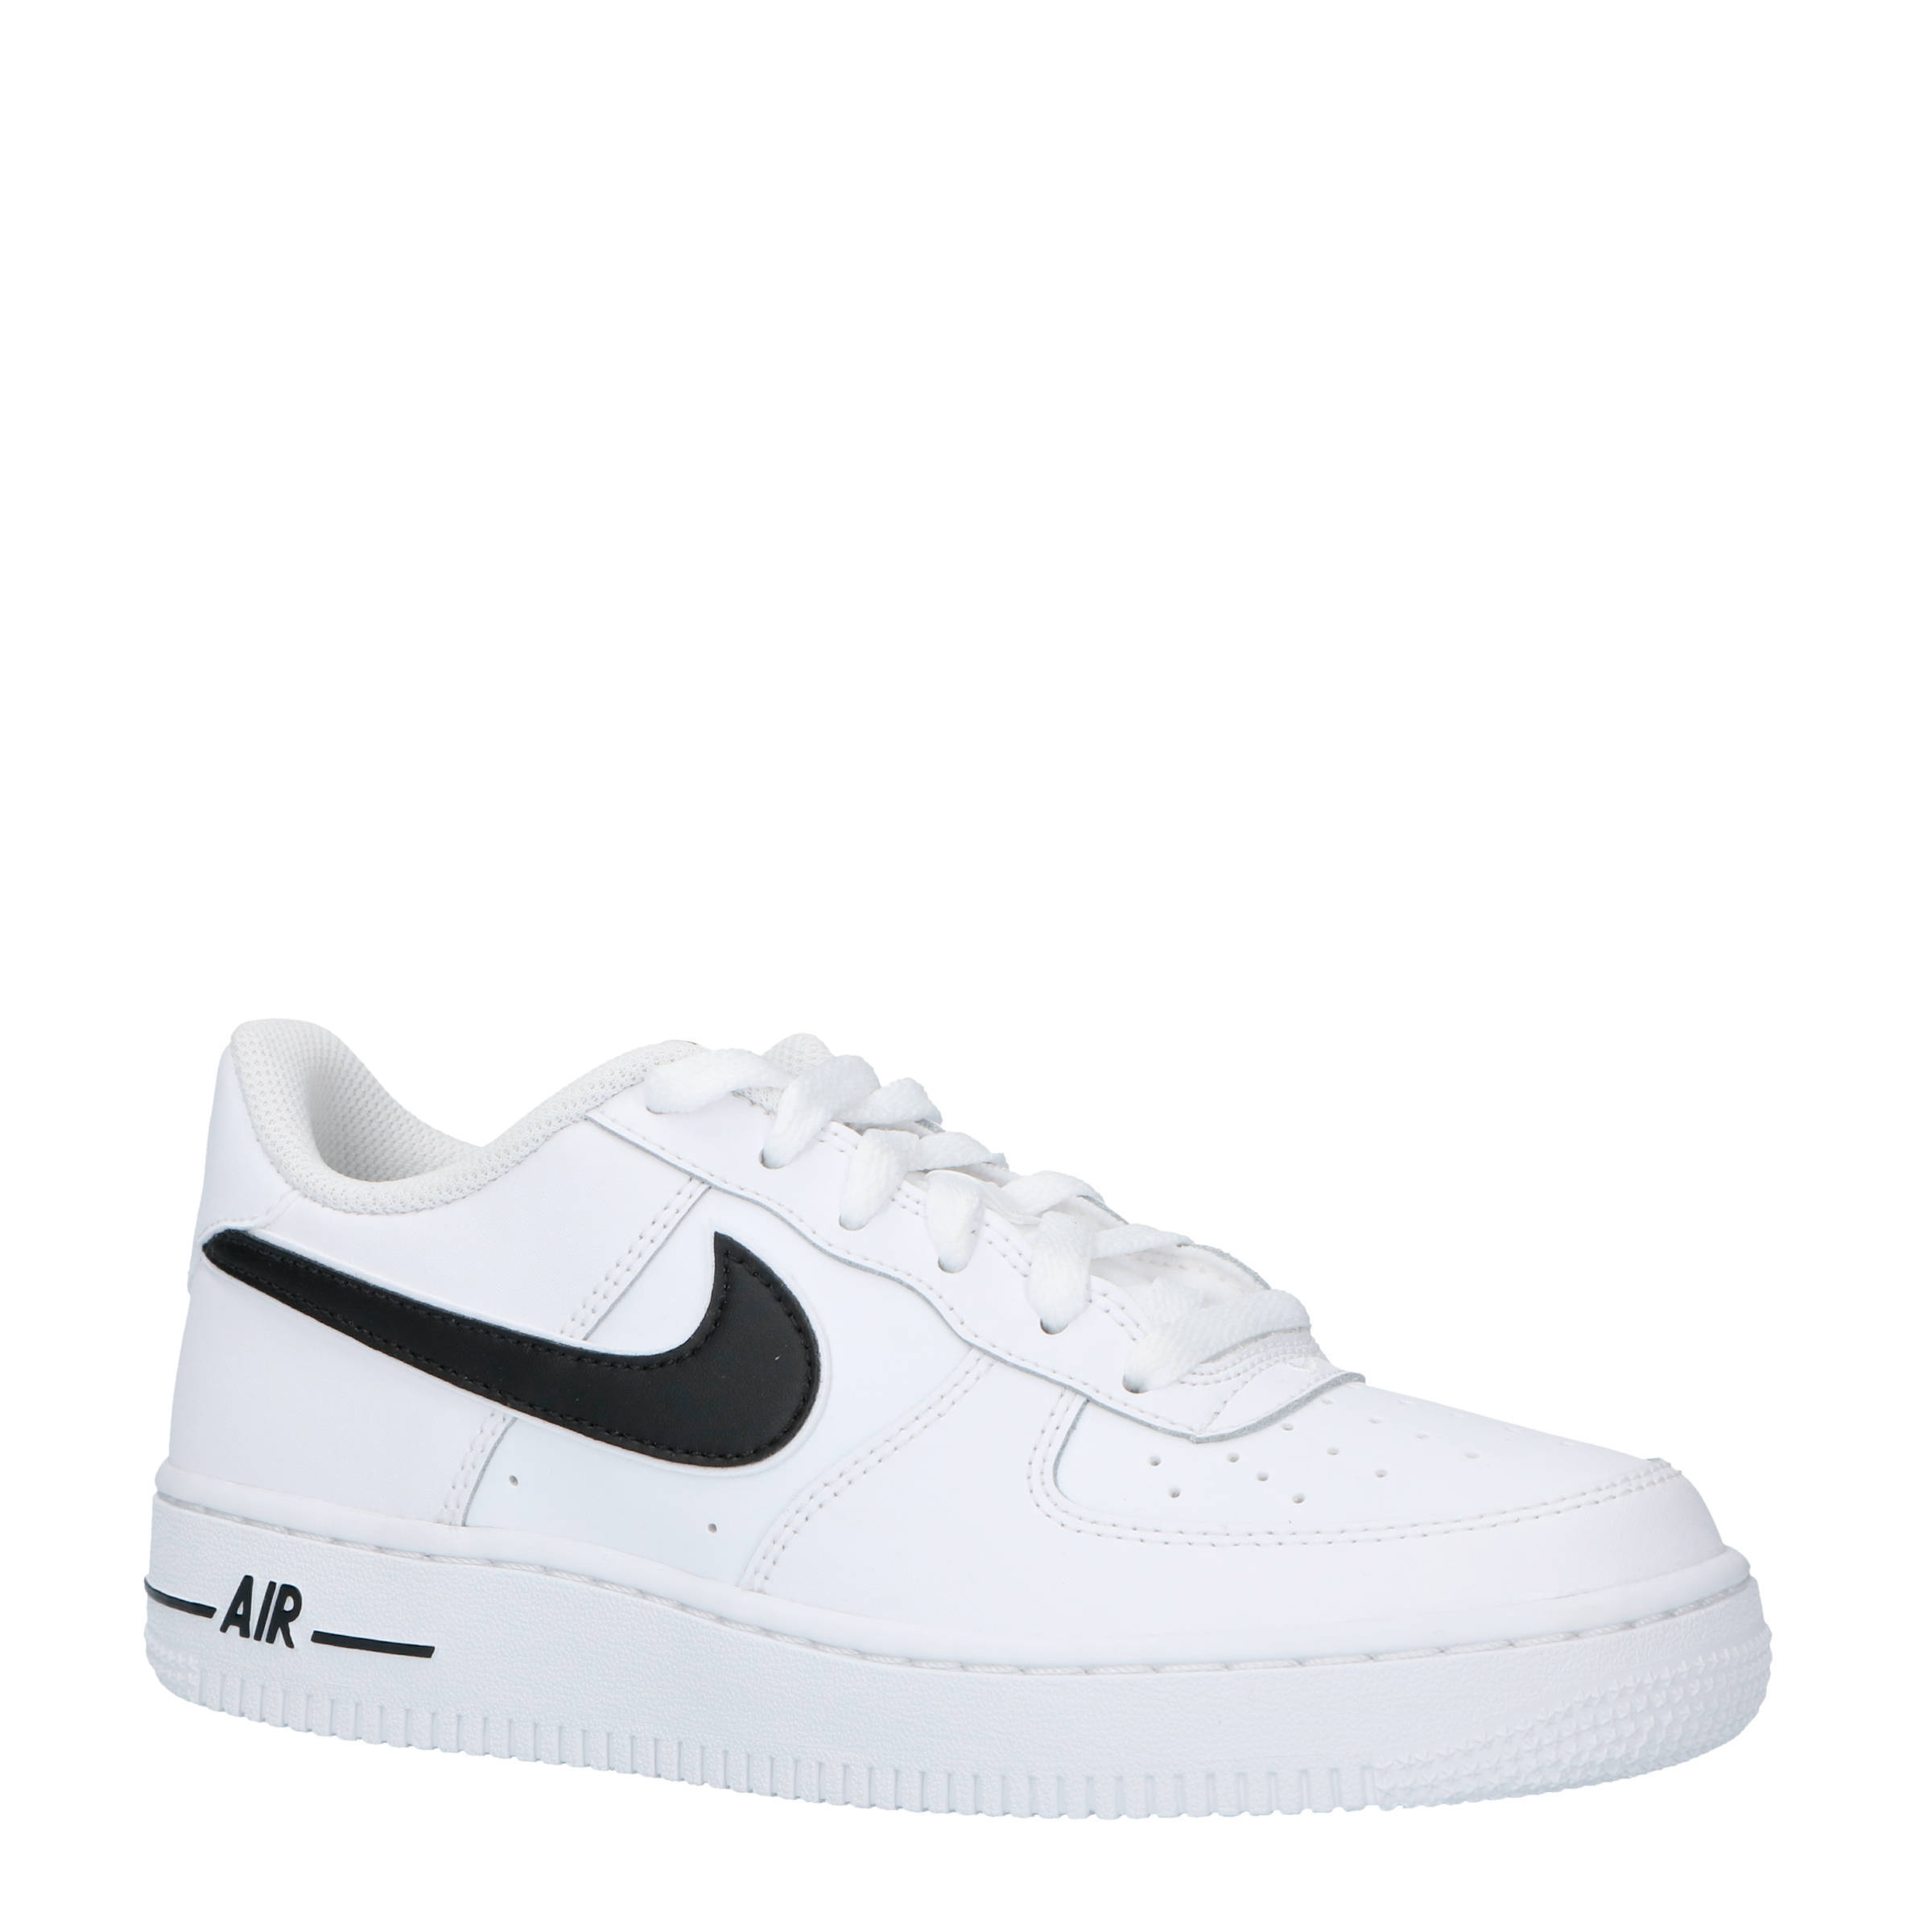 Nike Air Force 1-3 (GS) sneakers leer wit/zwart | wehkamp